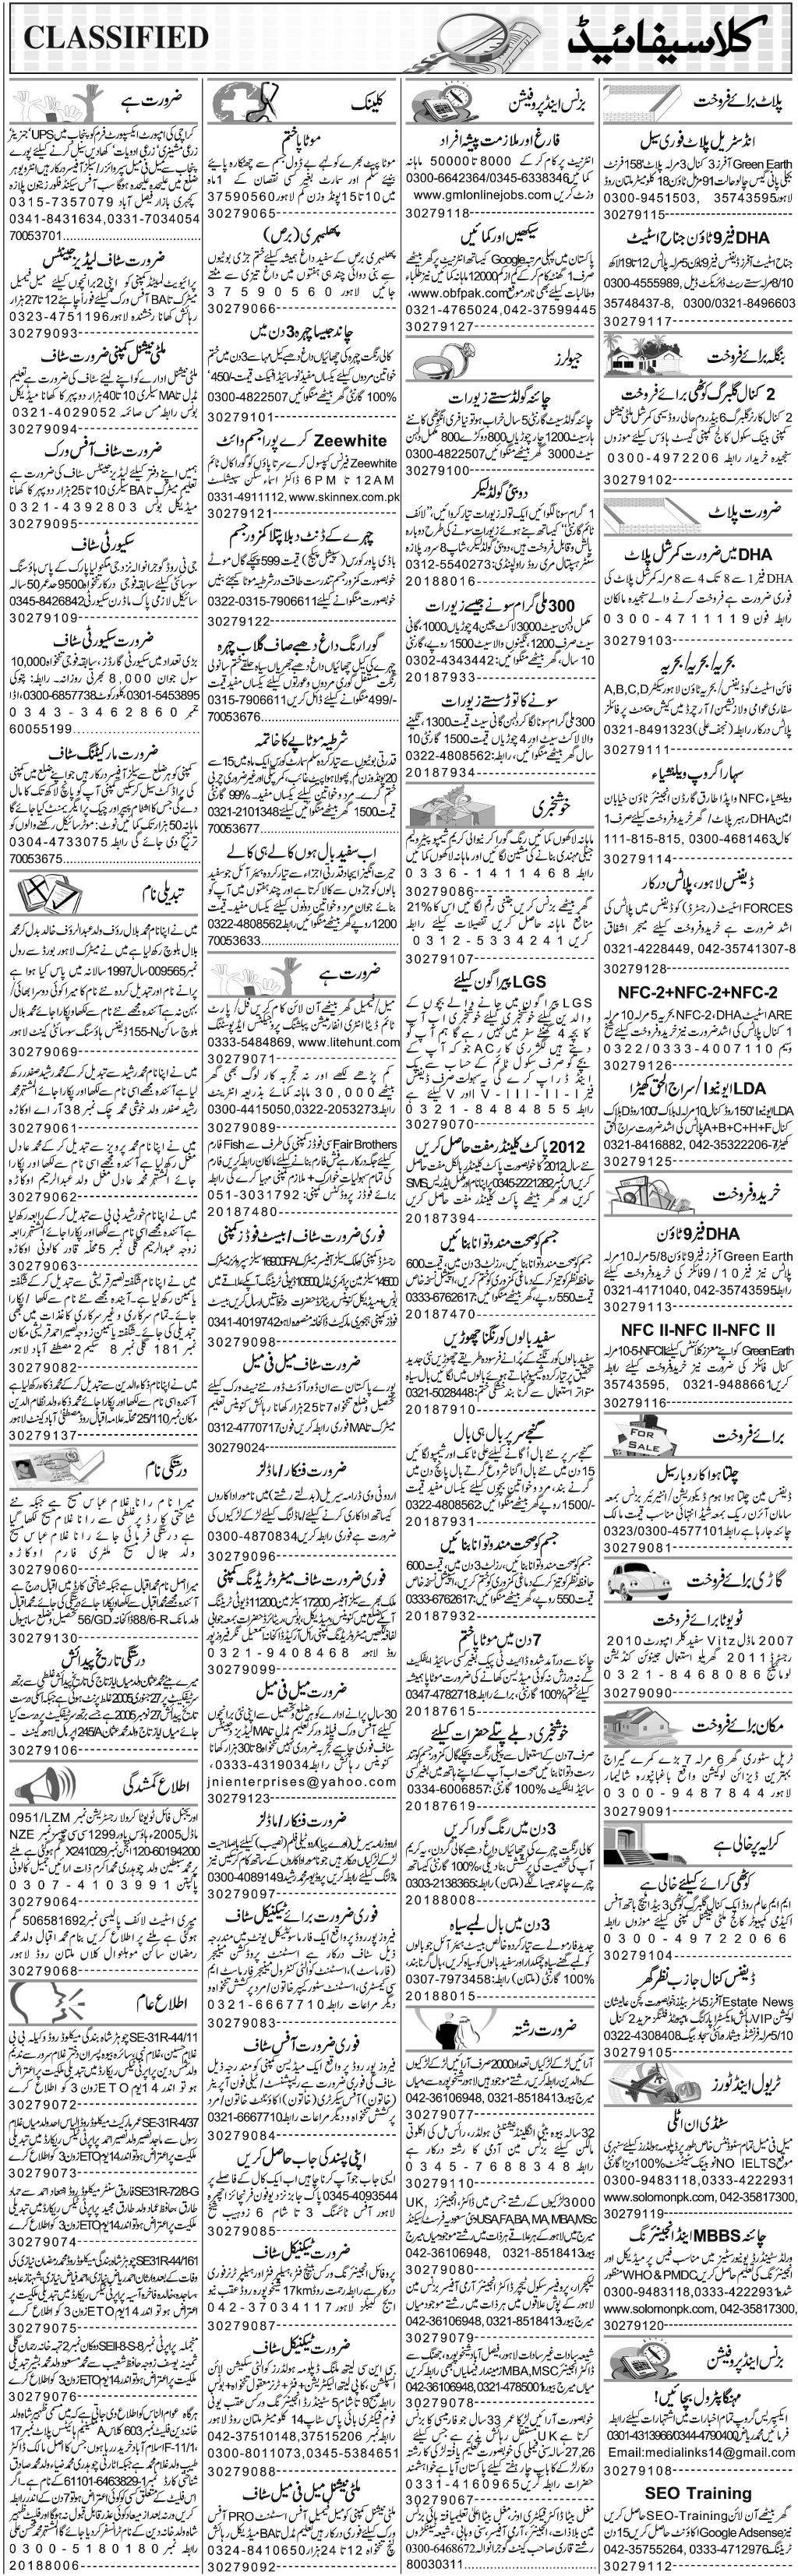 Classified Lahore Express Misc. Jobs